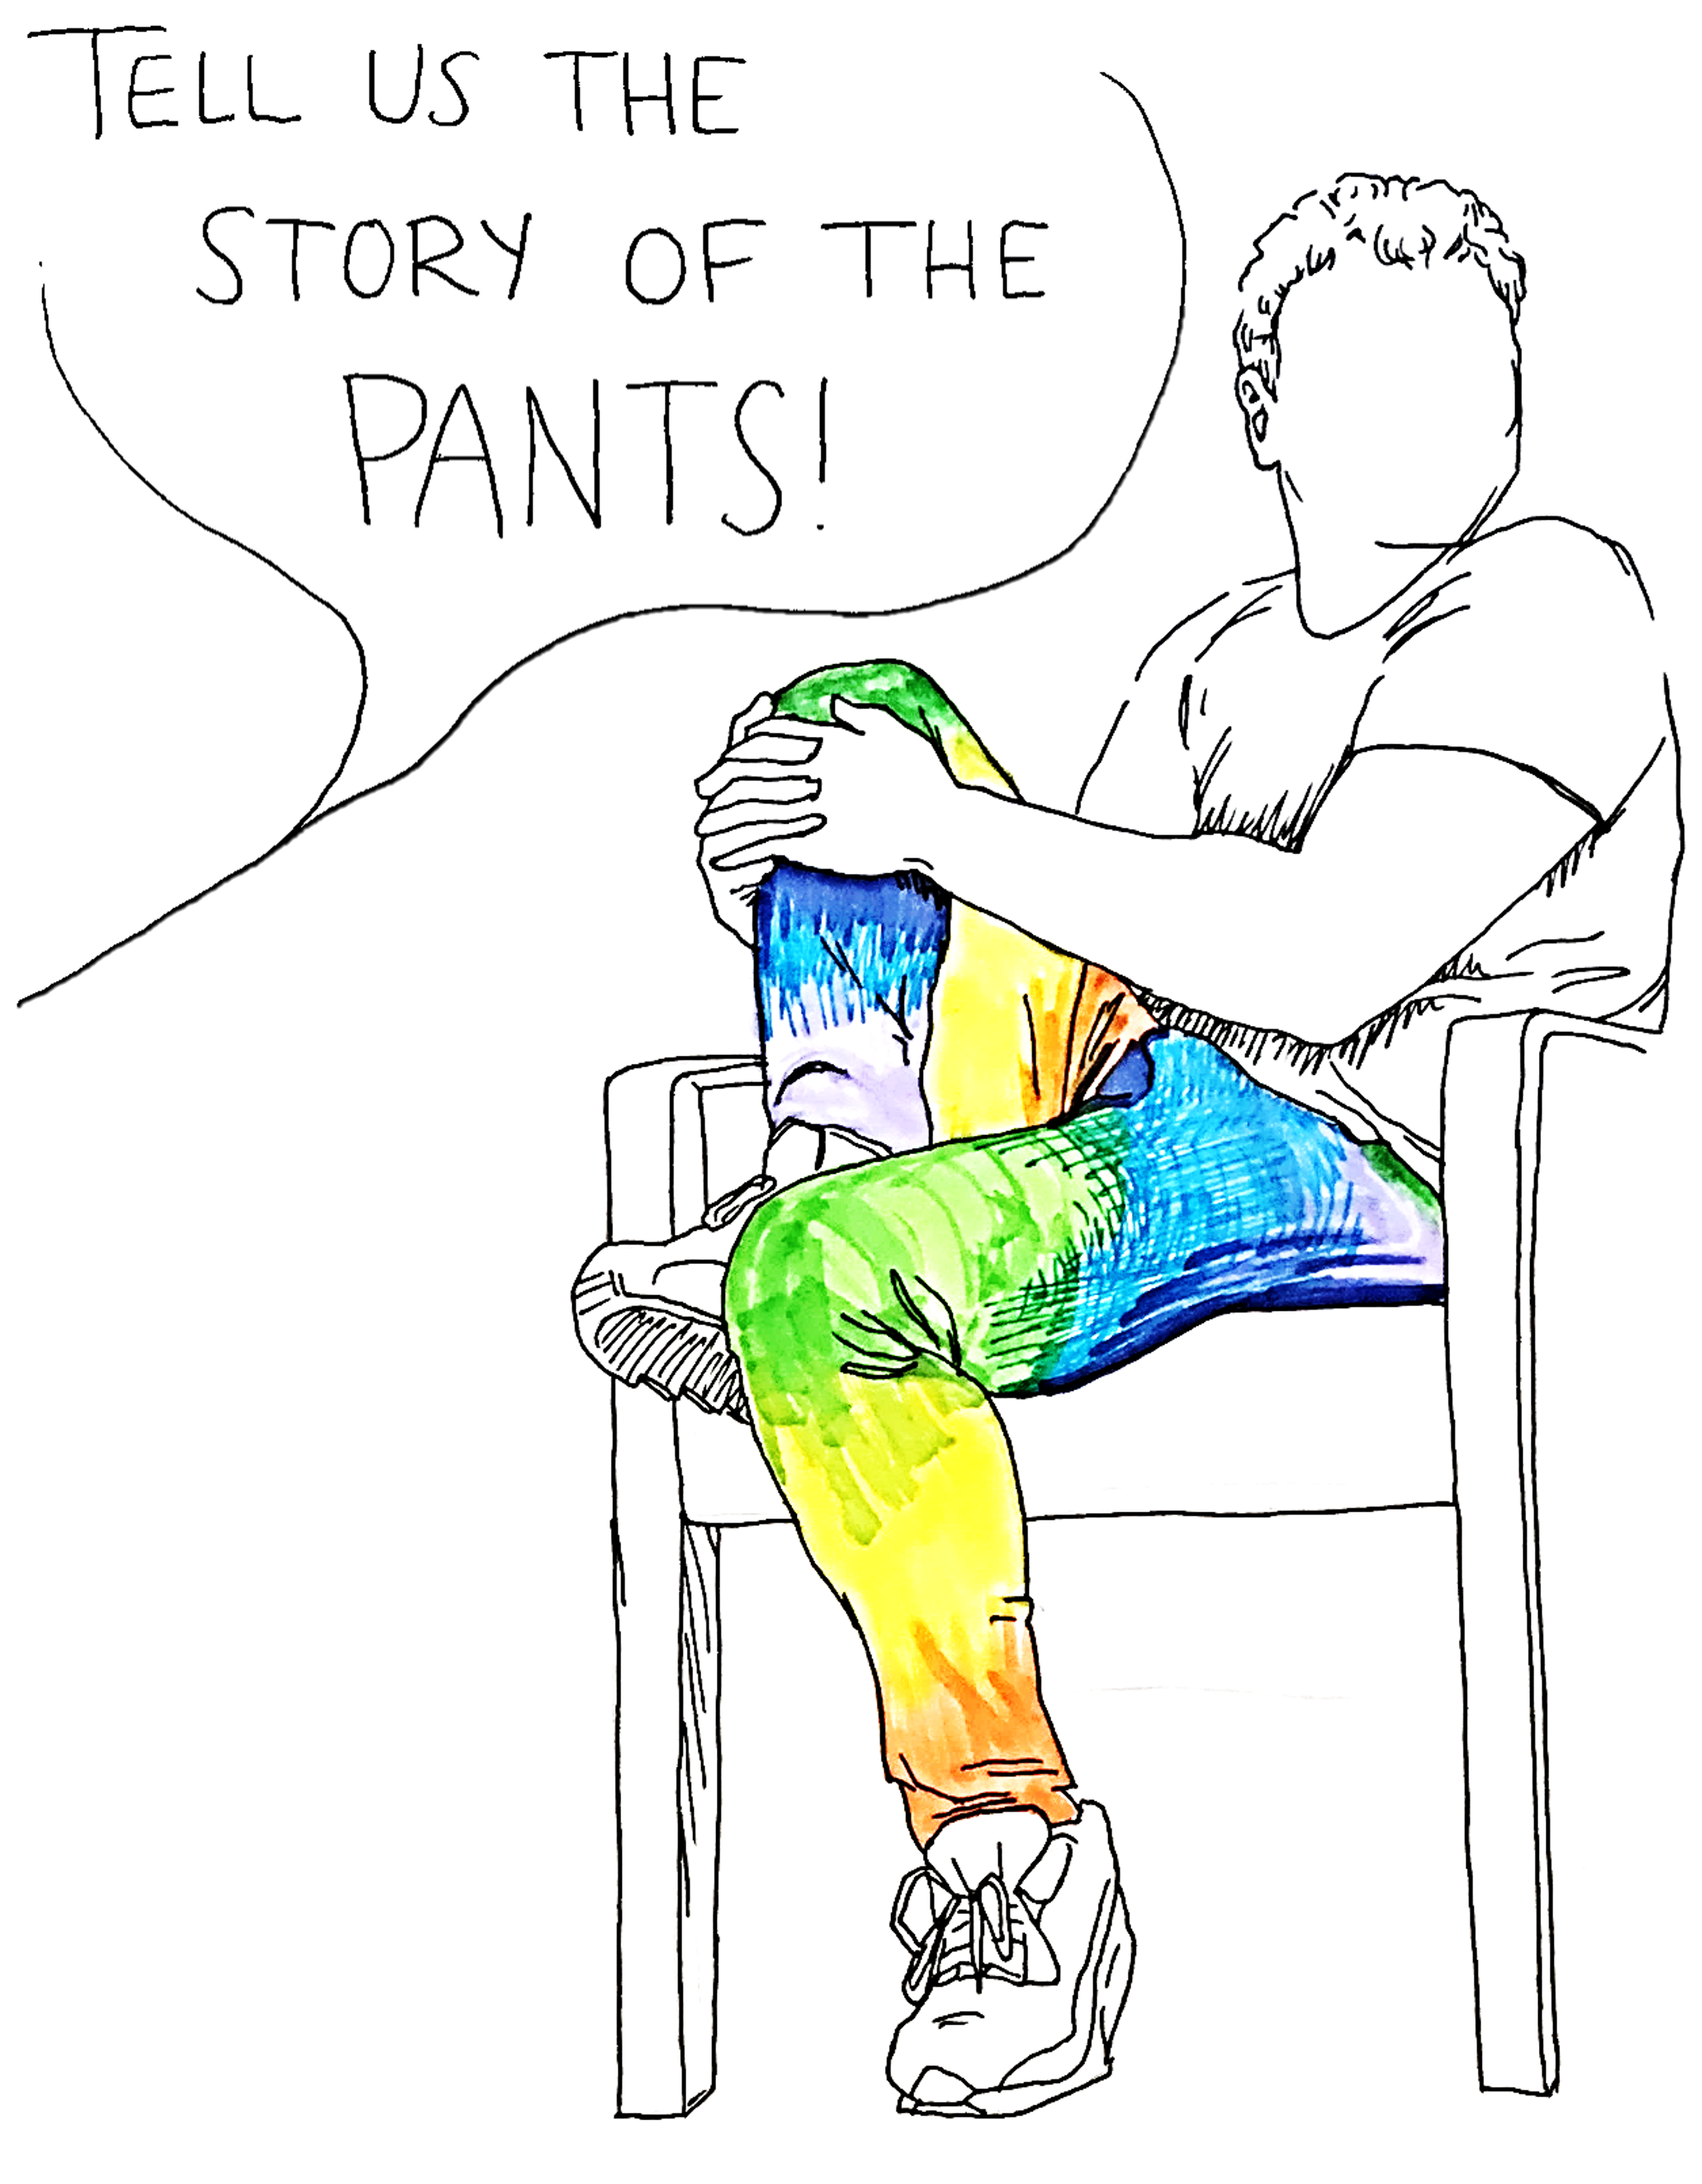 "A loose sketch of Jon Lovett in some snazzy rainbow pants. A speech bubble: ""TELL US THE STORY OF THE STORY OF THE PANTS!"""